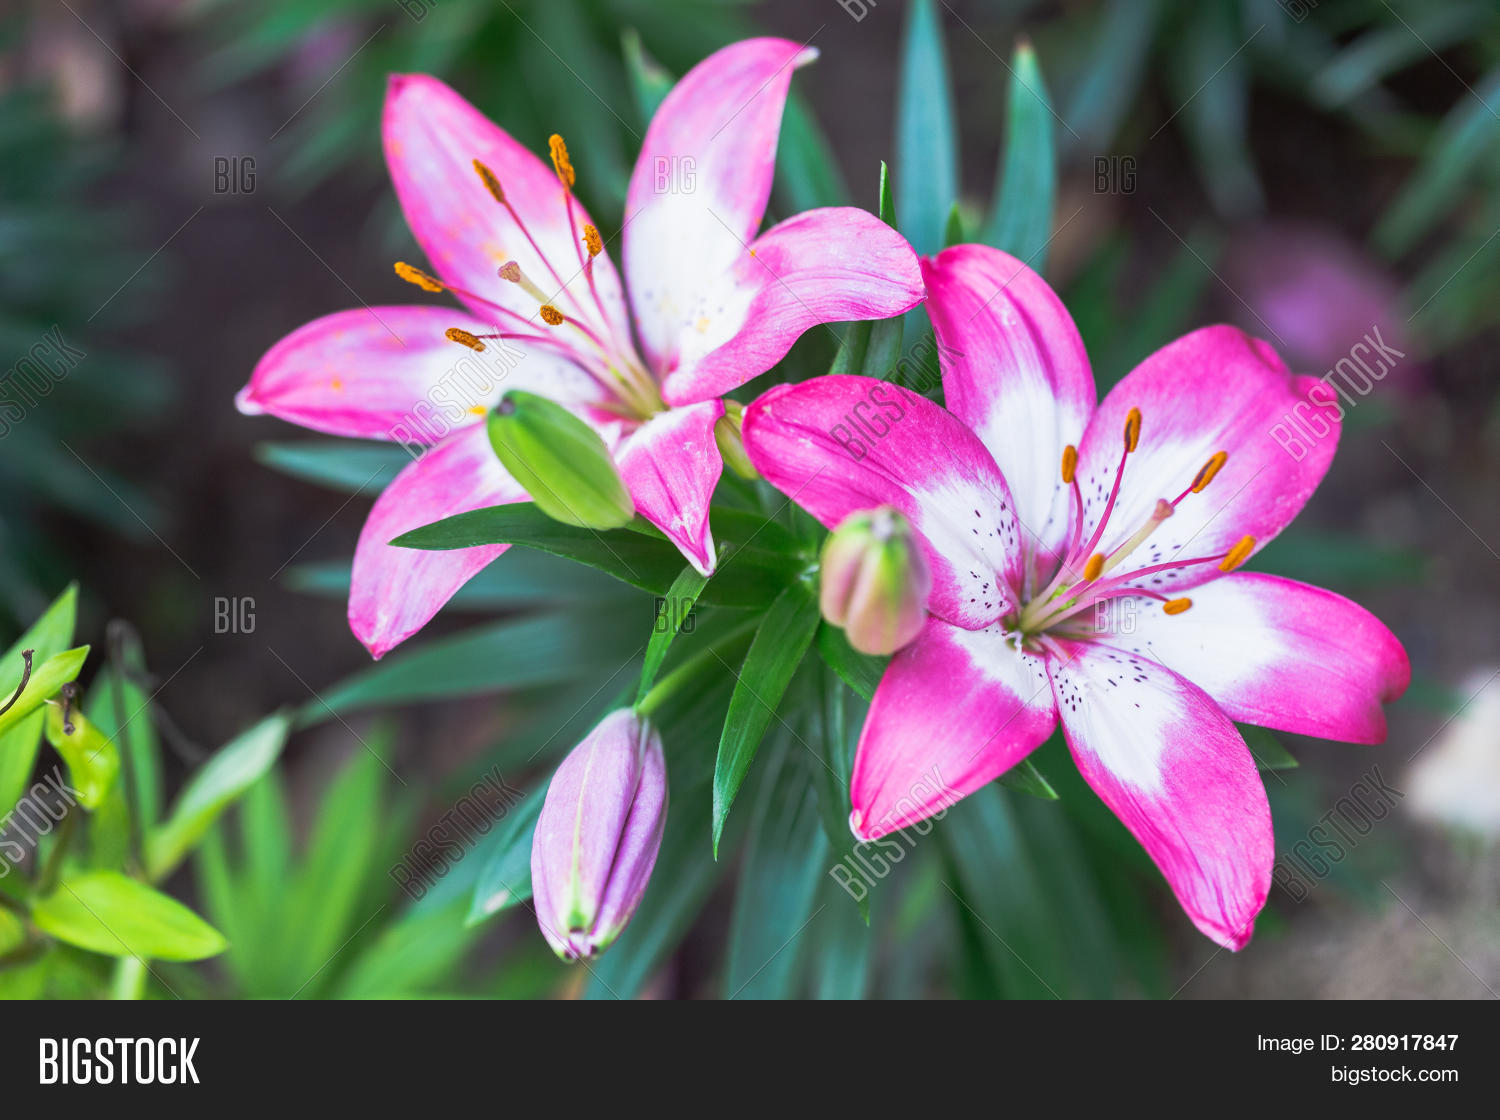 Pink Lily Flower Image Photo Free Trial Stock